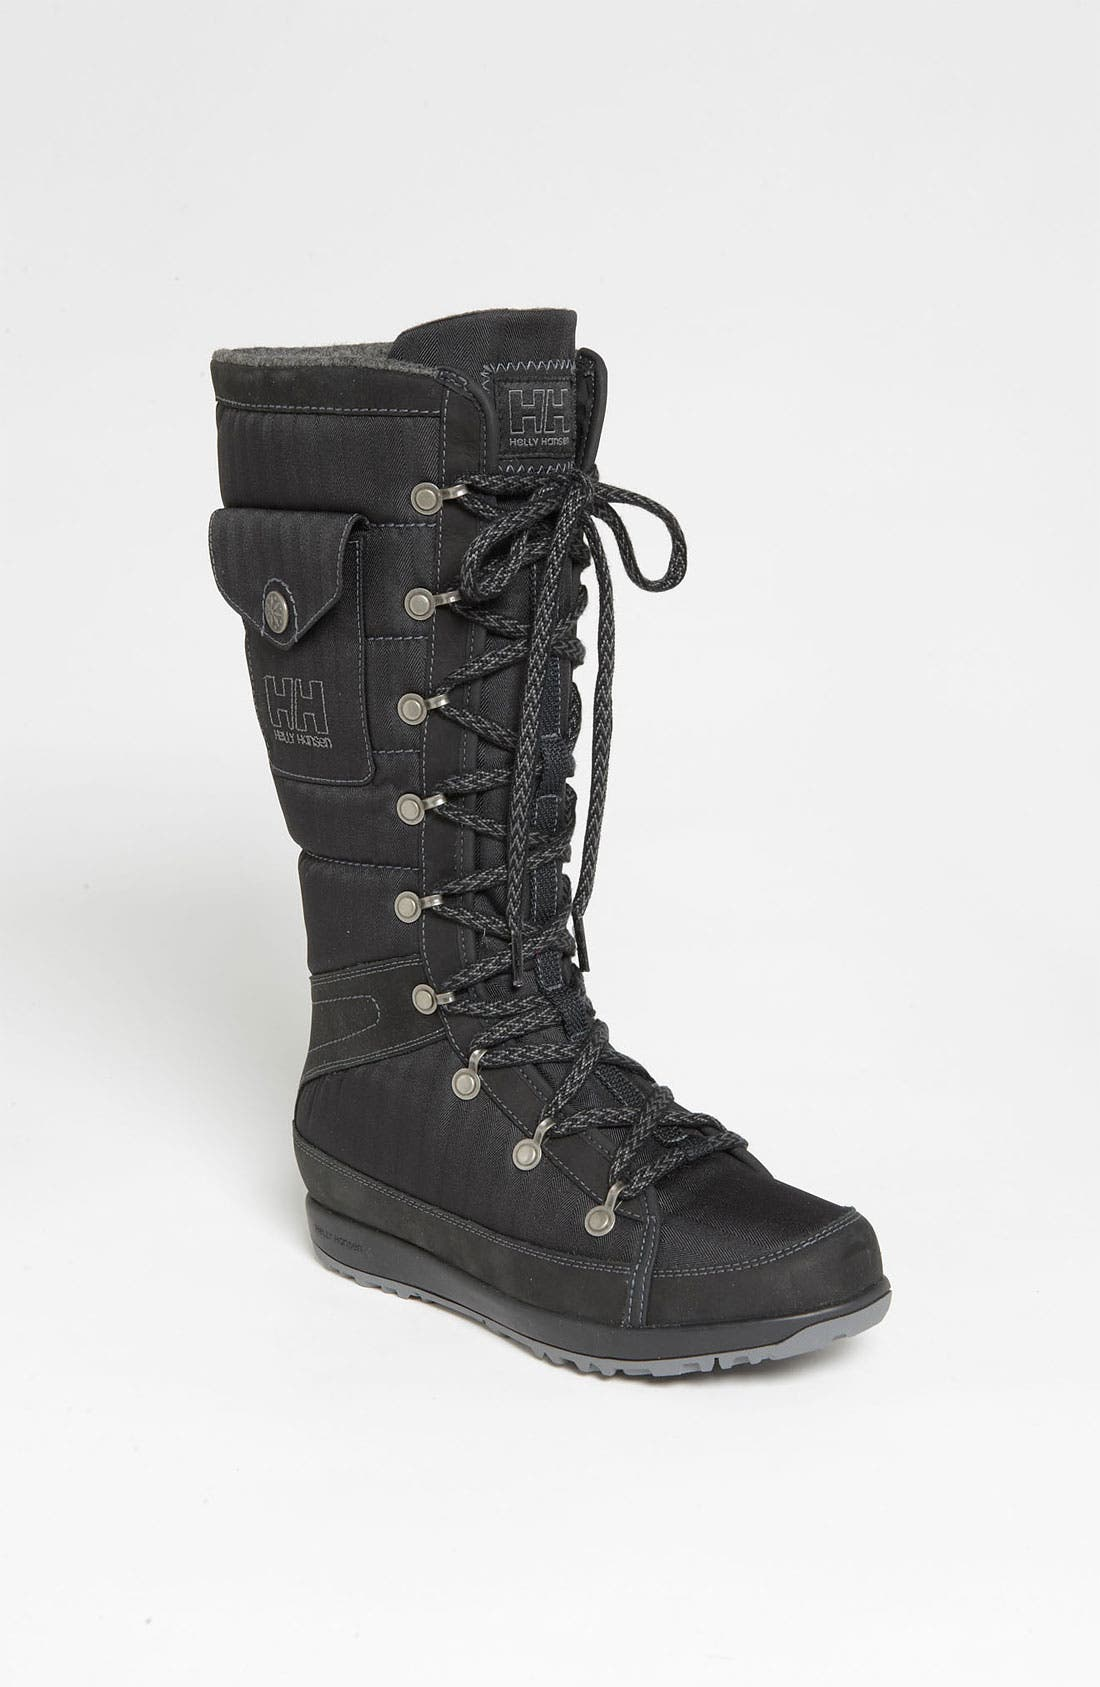 Alternate Image 1 Selected - Helly Hansen 'Parka' Boot